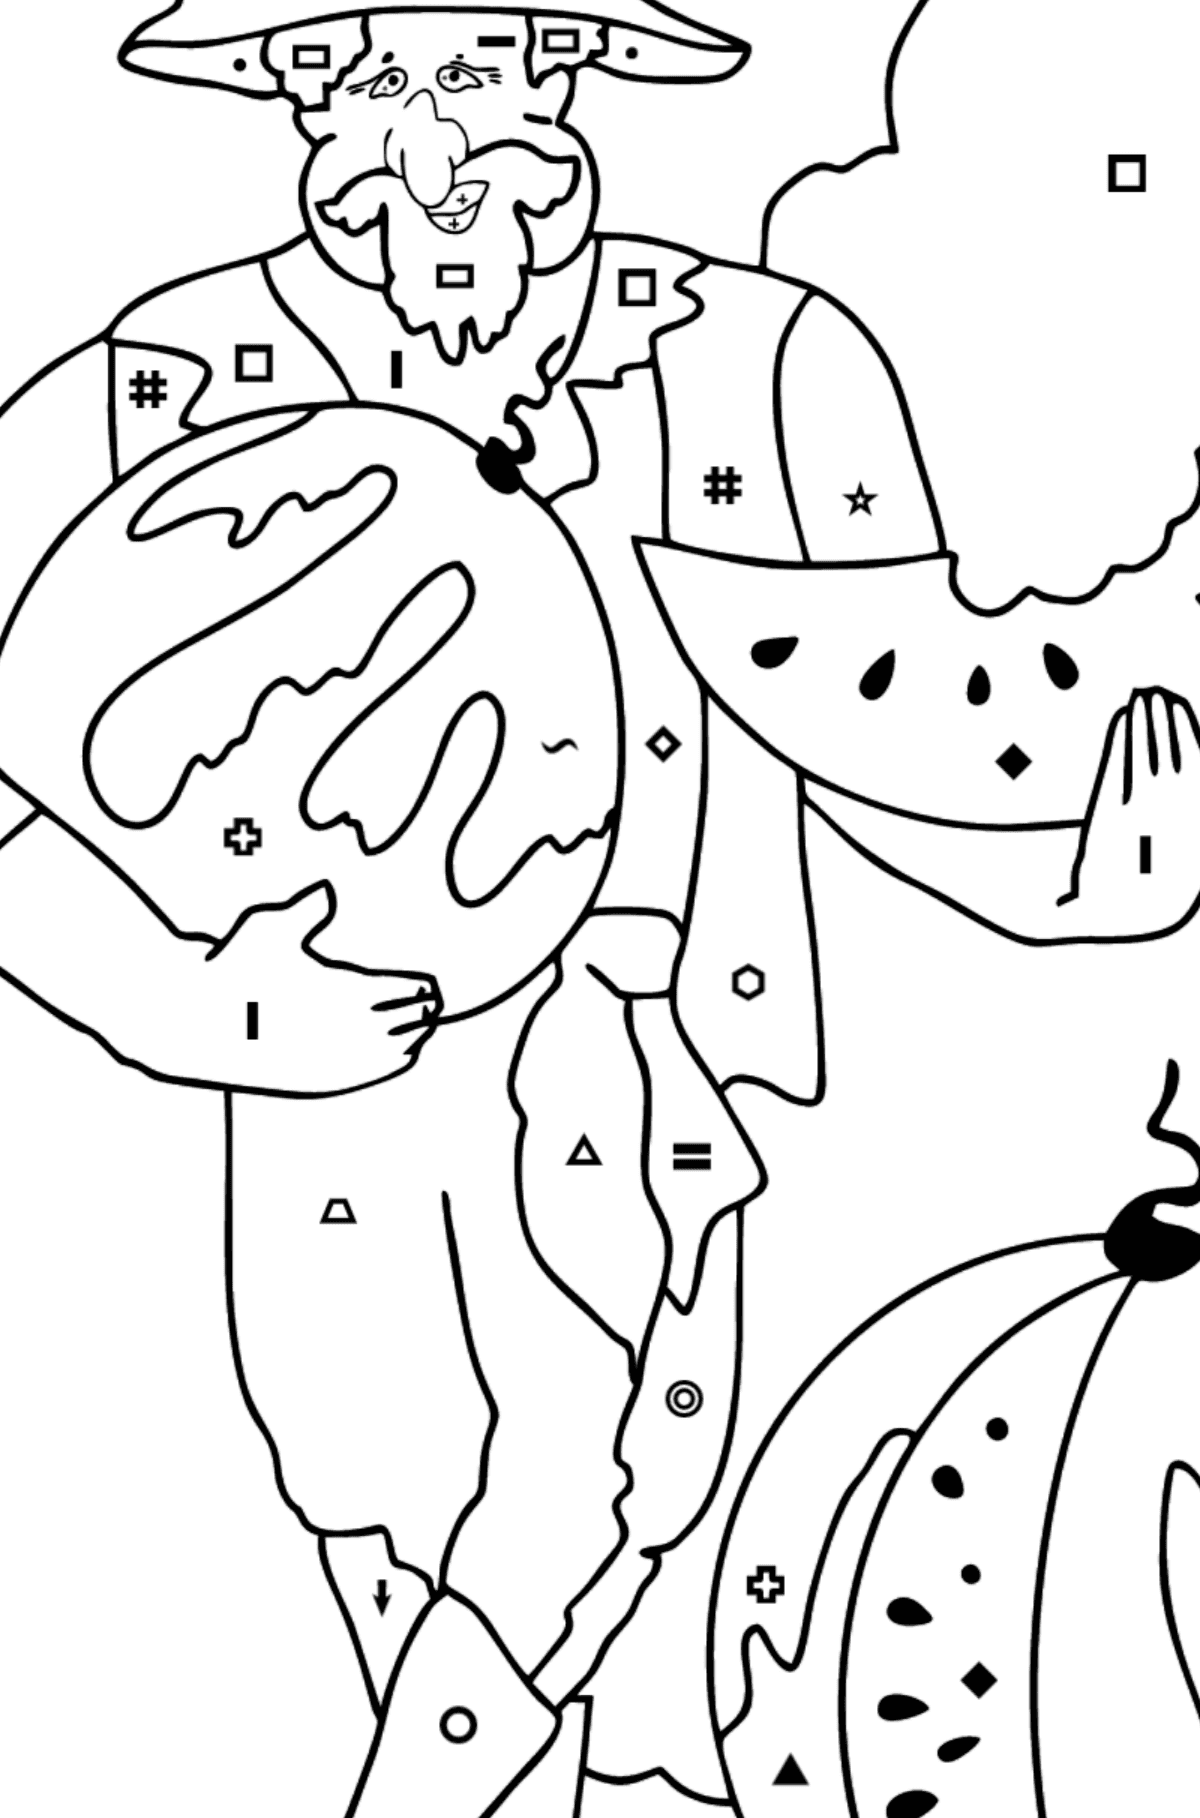 Coloring Page - A Pirate is Sharing a Ripe Watermelon - Coloring by Symbols and Geometric Shapes for Kids